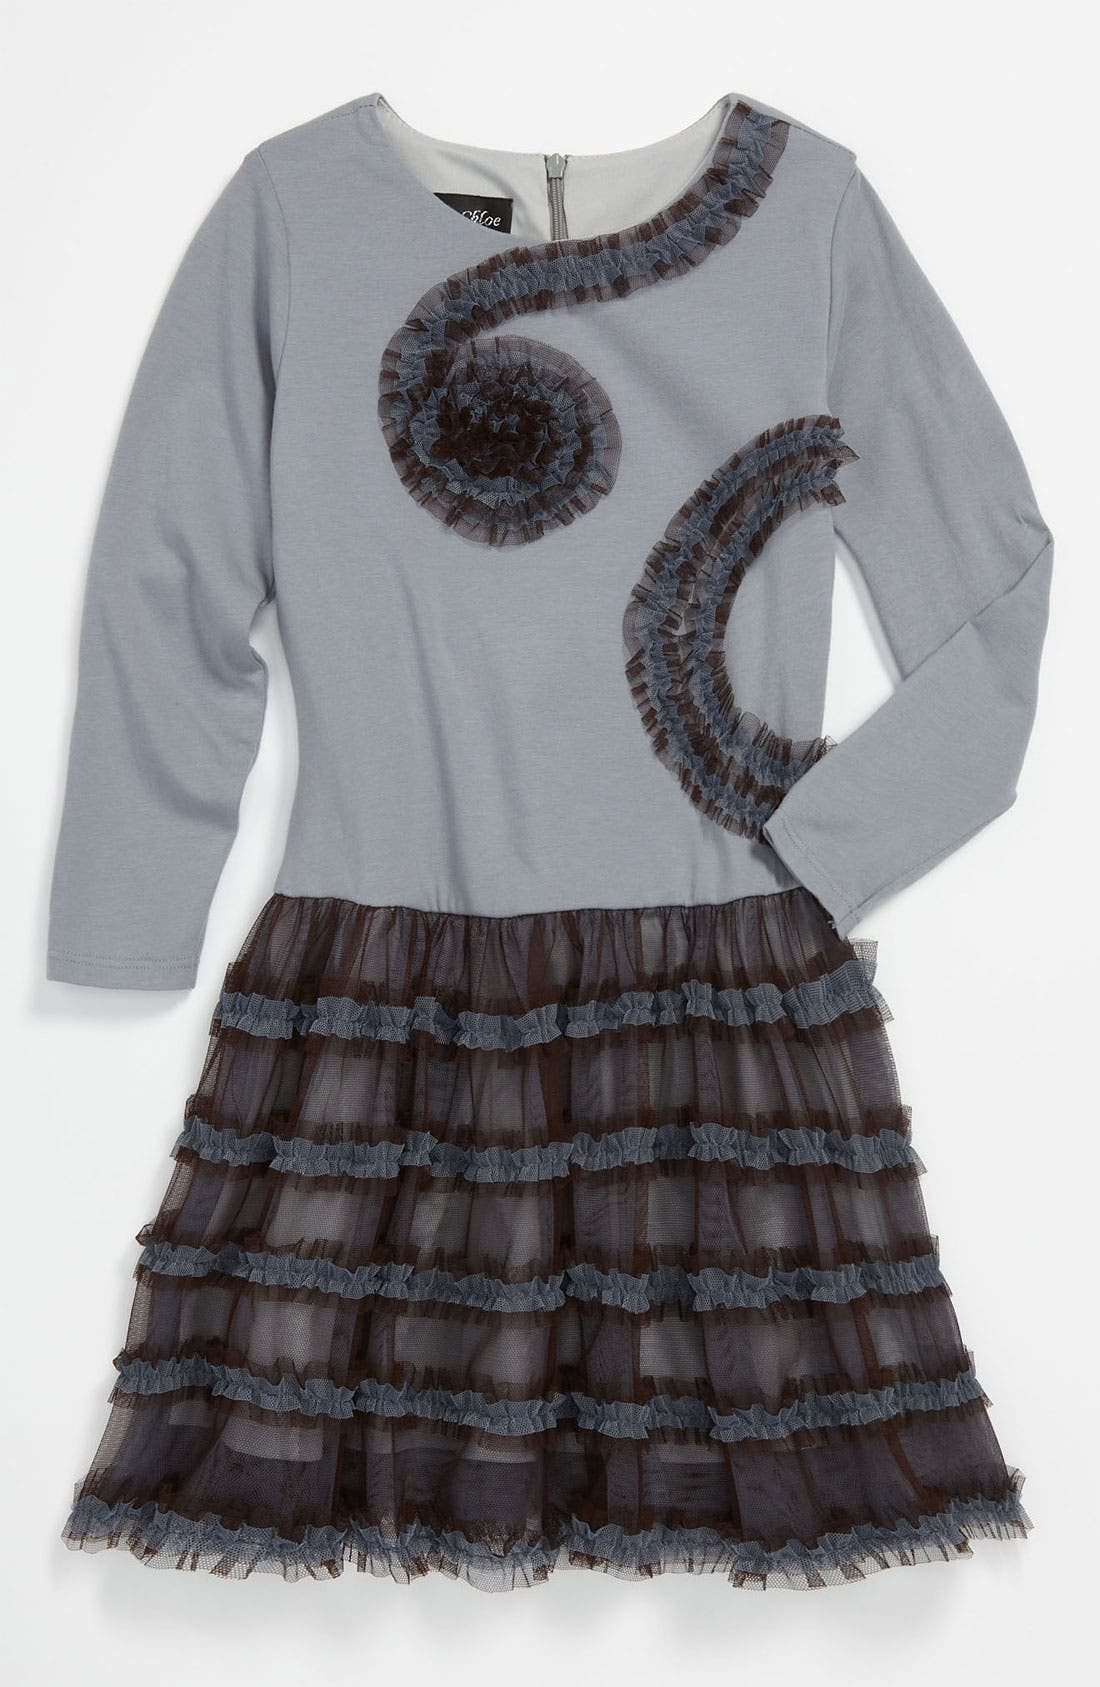 Alternate Image 1 Selected - Isobella & Chloe 'Blue Moon' Mesh Ruffle Dress (Little Girls & Big Girls)